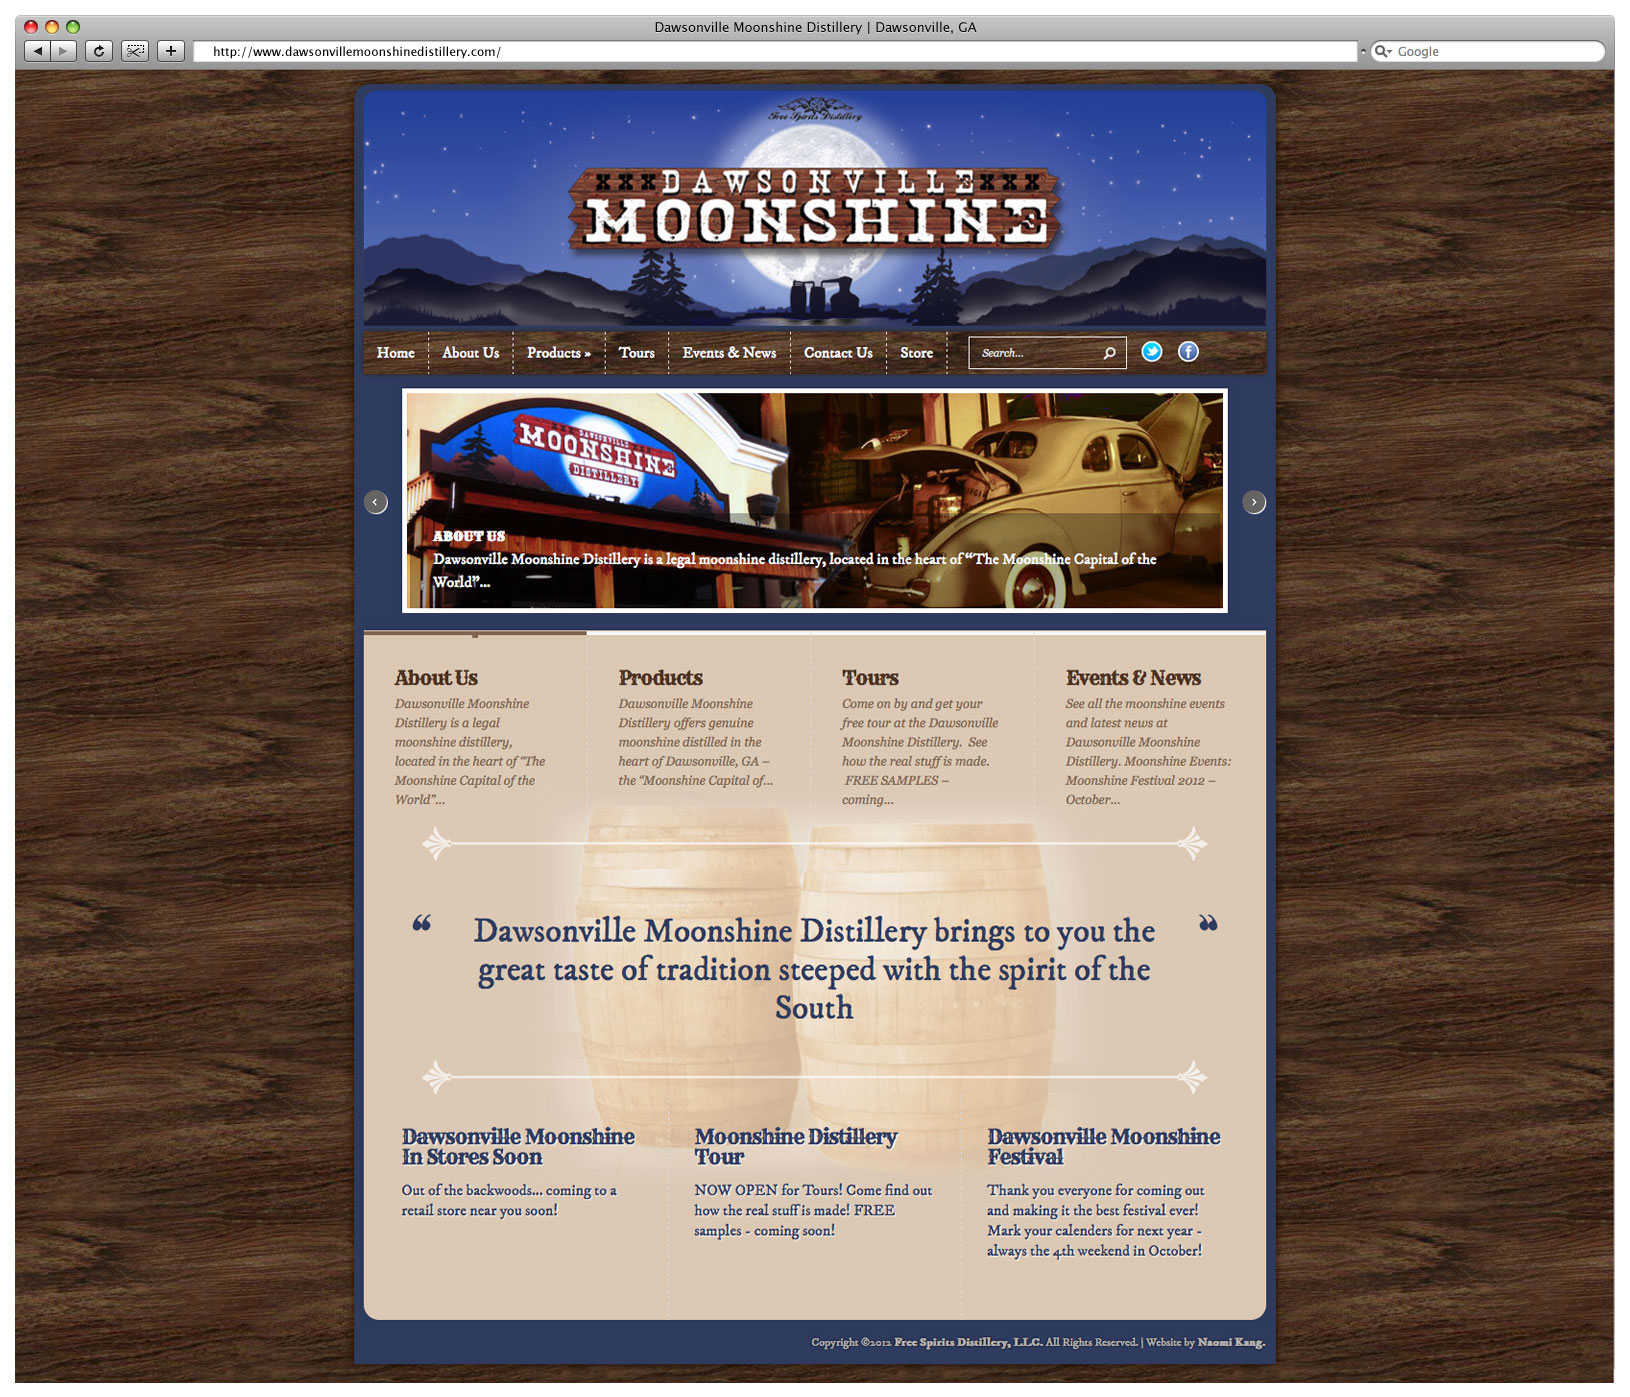 Dawsonville Moonshine Distillery Website